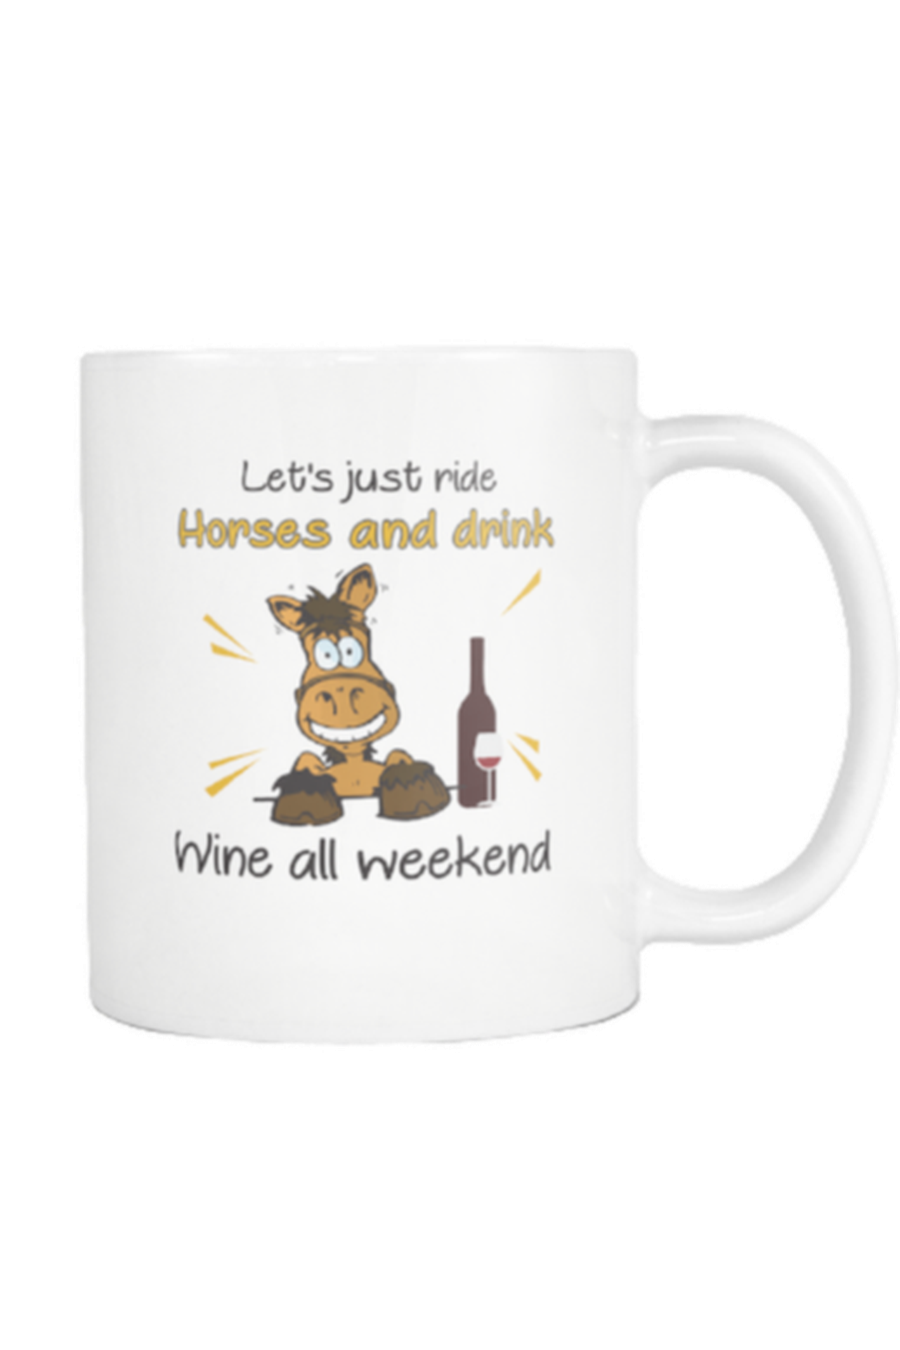 Ride Horses And Drink Wine - Mug